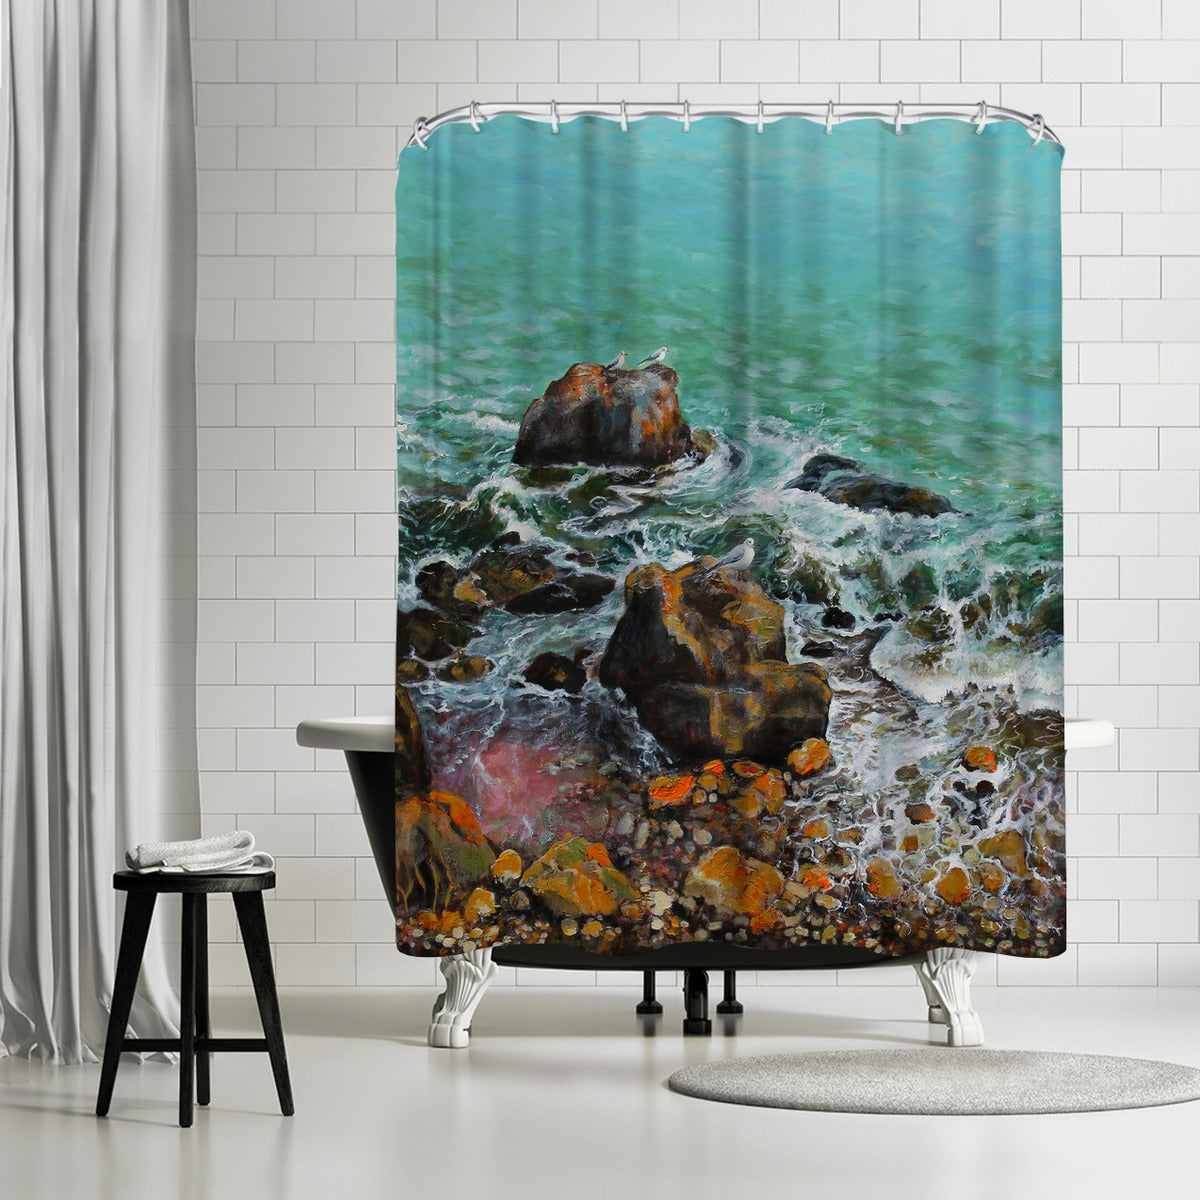 Seagulls On The Rocks by Sandra Francis Shower Curtain - Shower Curtain - Americanflat